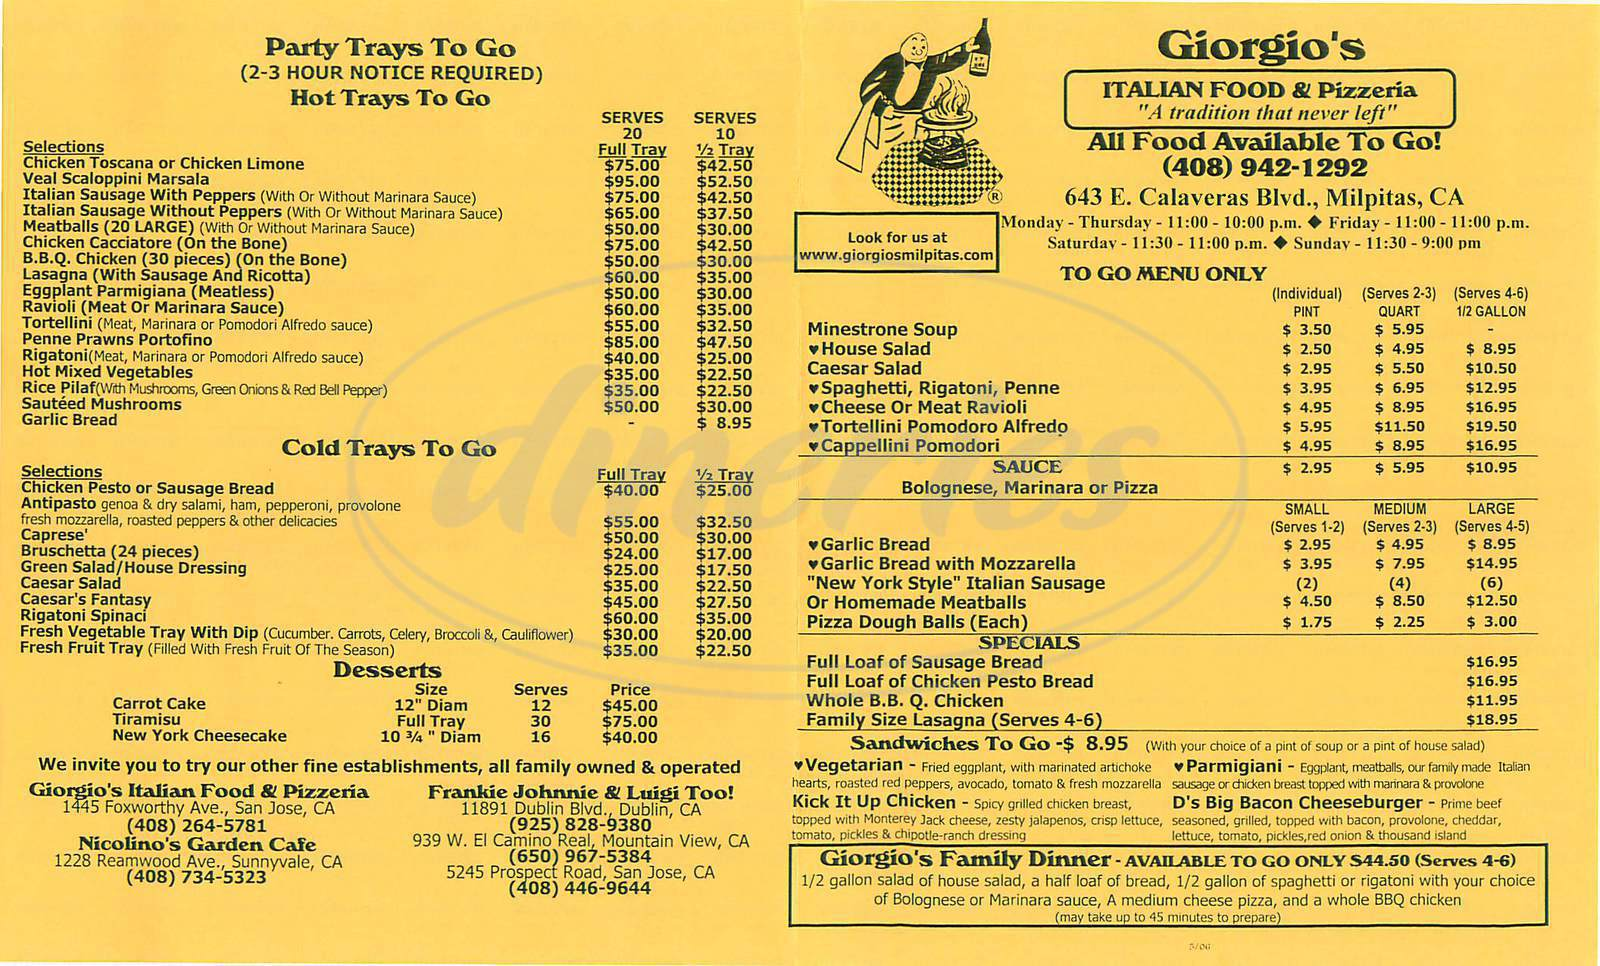 menu for Giorgios Italian Food & Pizzeria